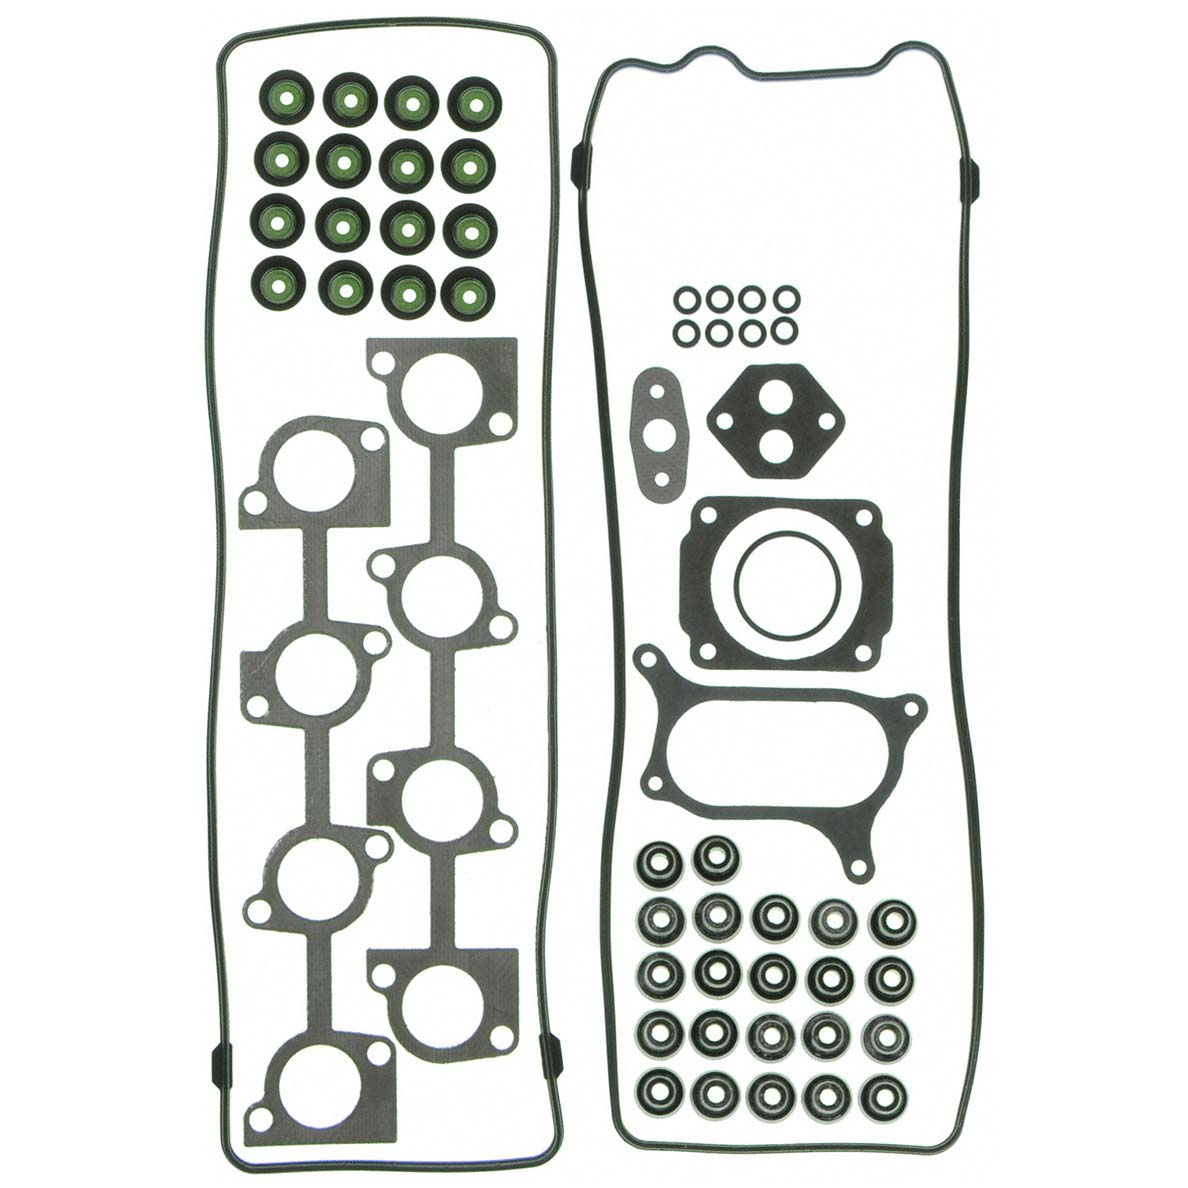 Ford Expedition Cylinder Head Gasket Sets Parts View